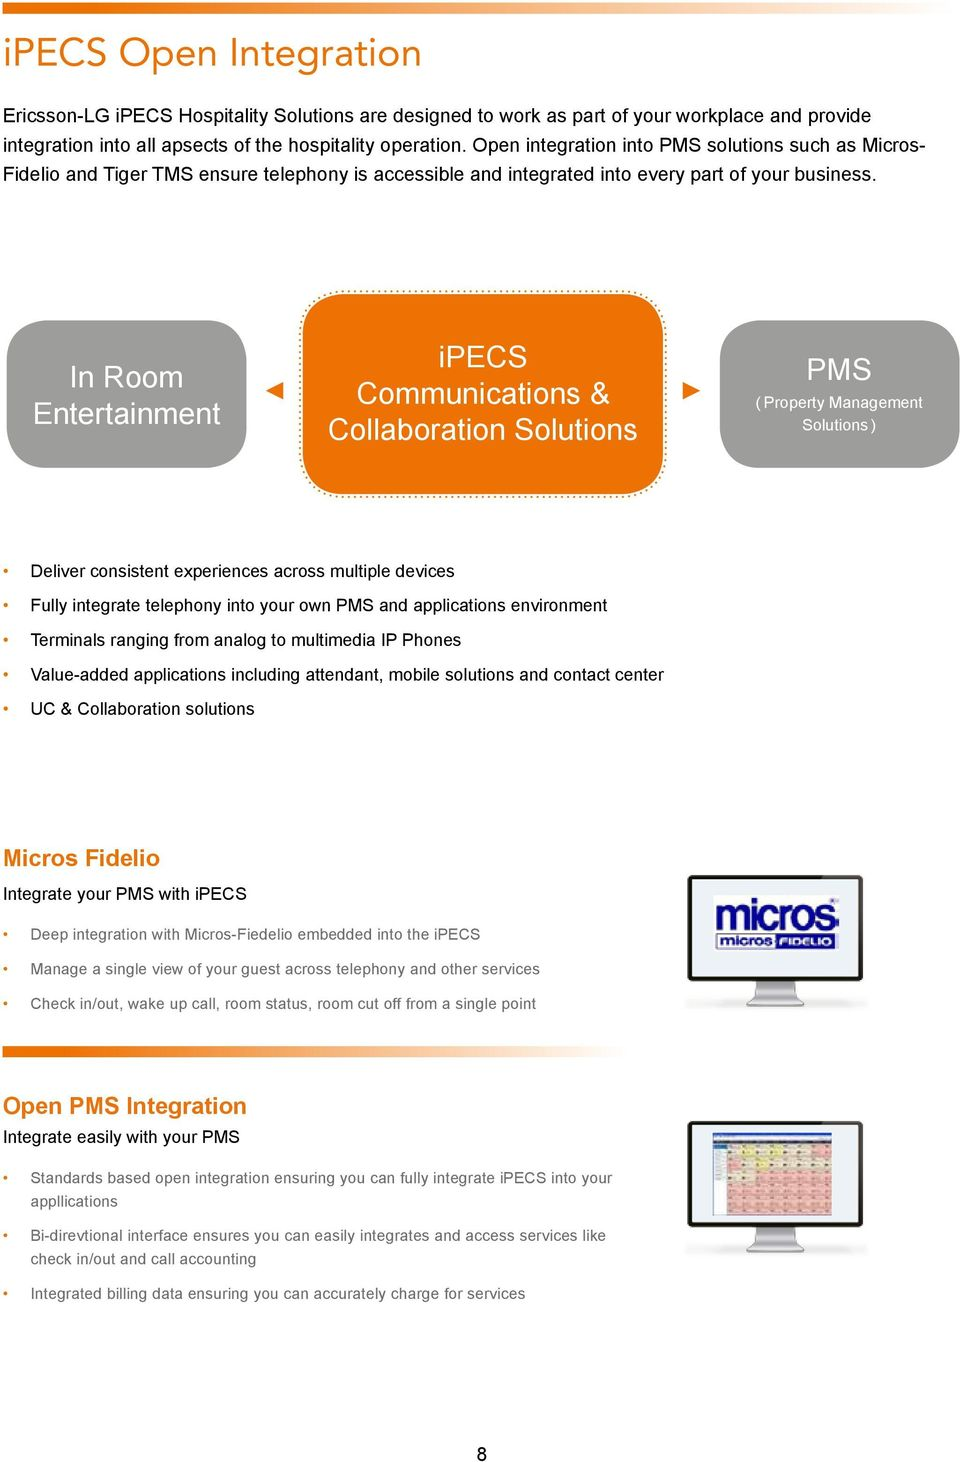 In Room Entertainment ipecs Communications & Collaboration Solutions PMS ( Property Management Solutions ) Deliver consistent experiences across multiple devices Fully integrate telephony into your